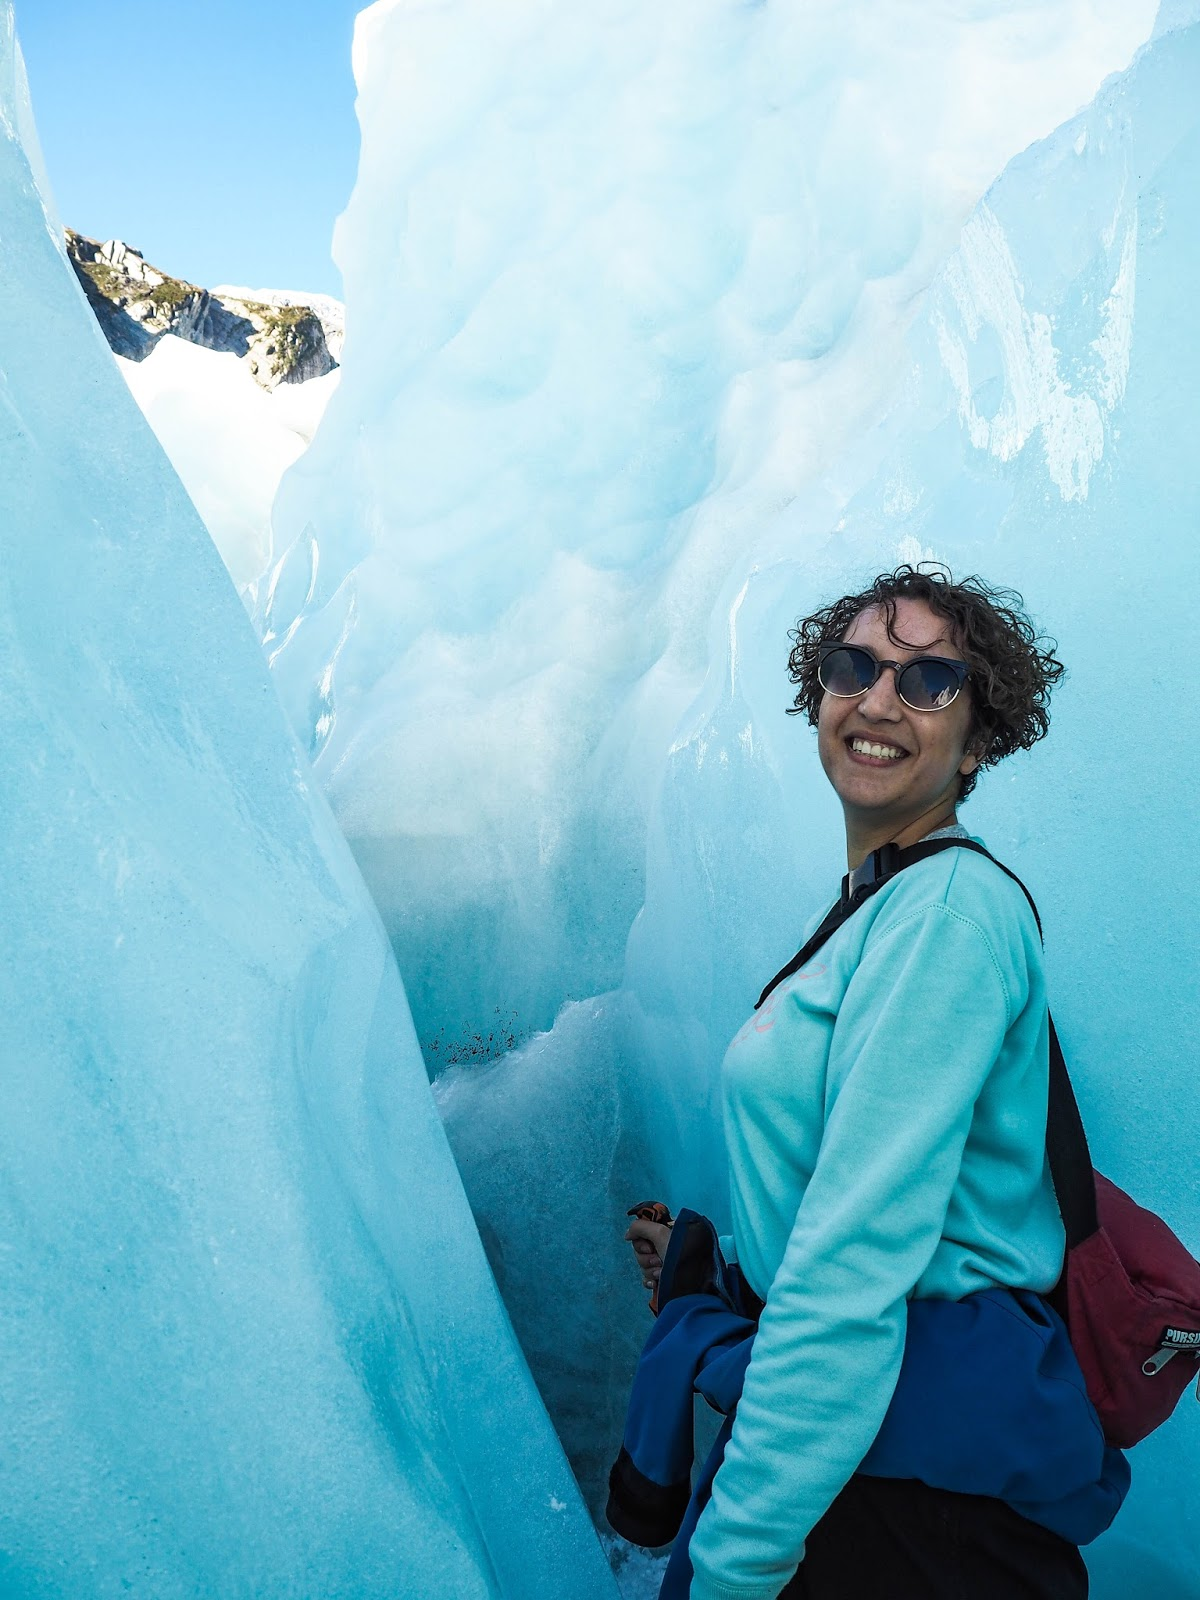 Inside crevasse on Franz Josef glacier